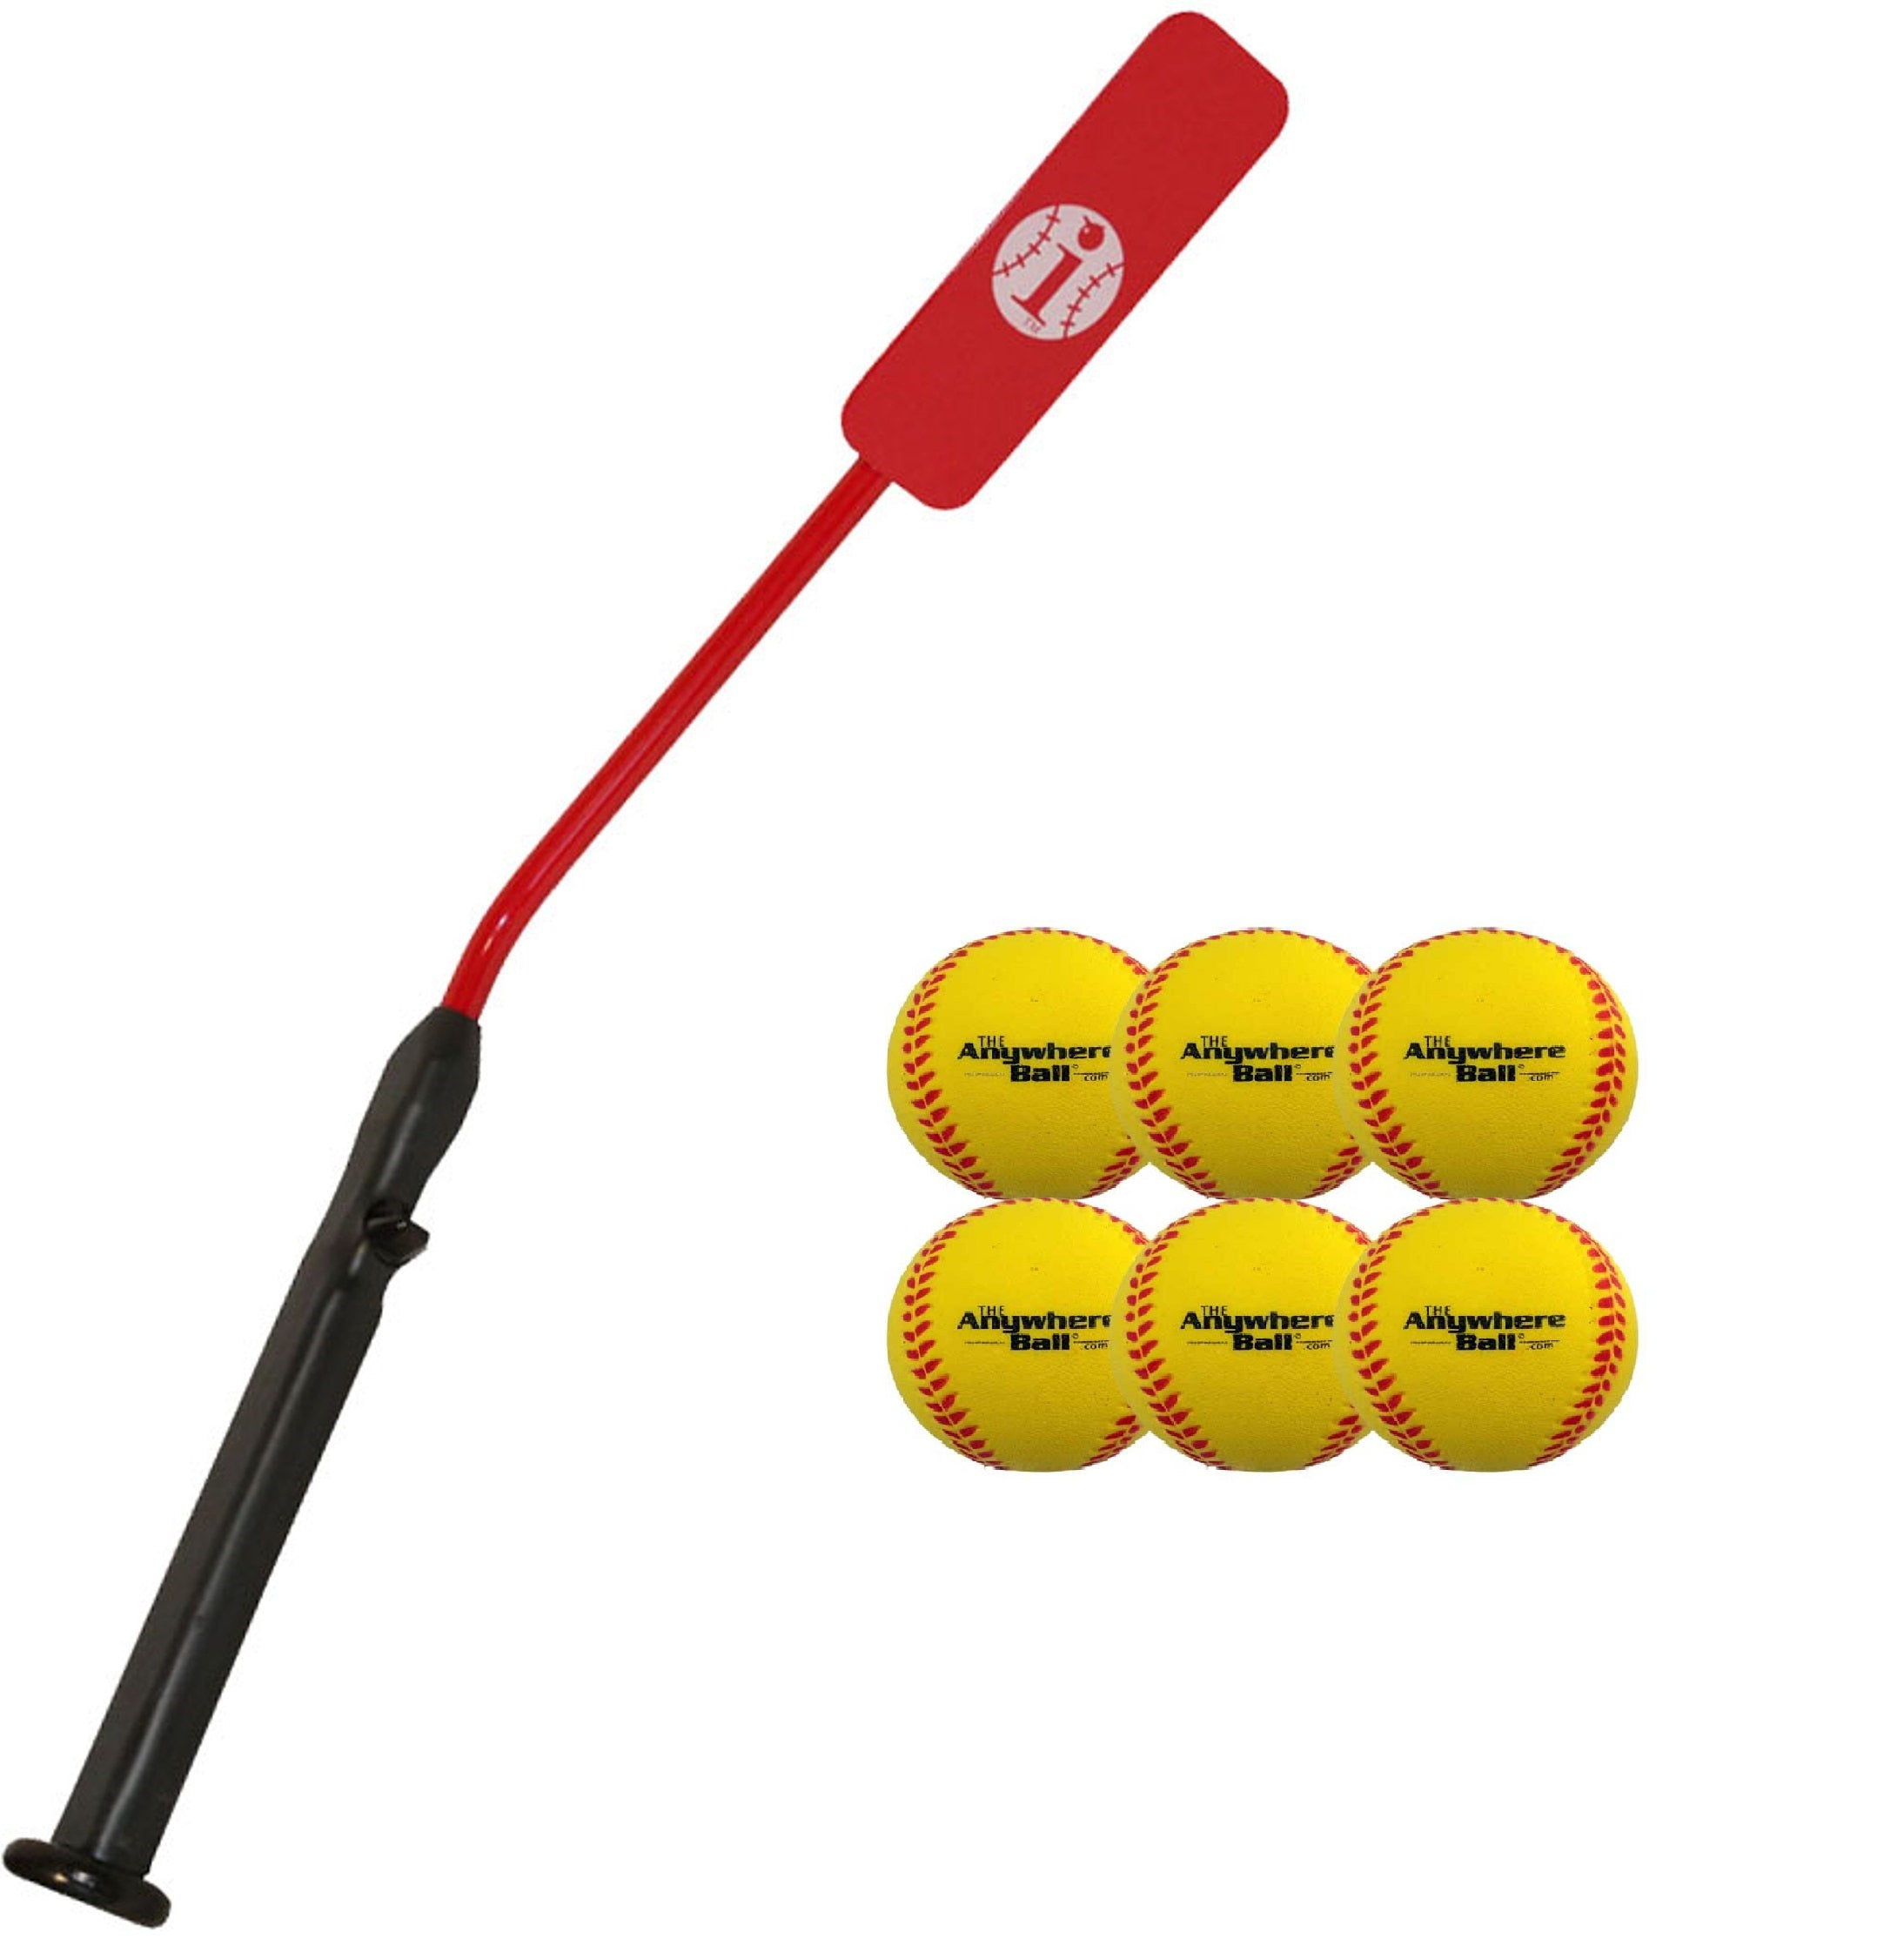 Insider Bat Baseball And Softball Batting Practice Kit